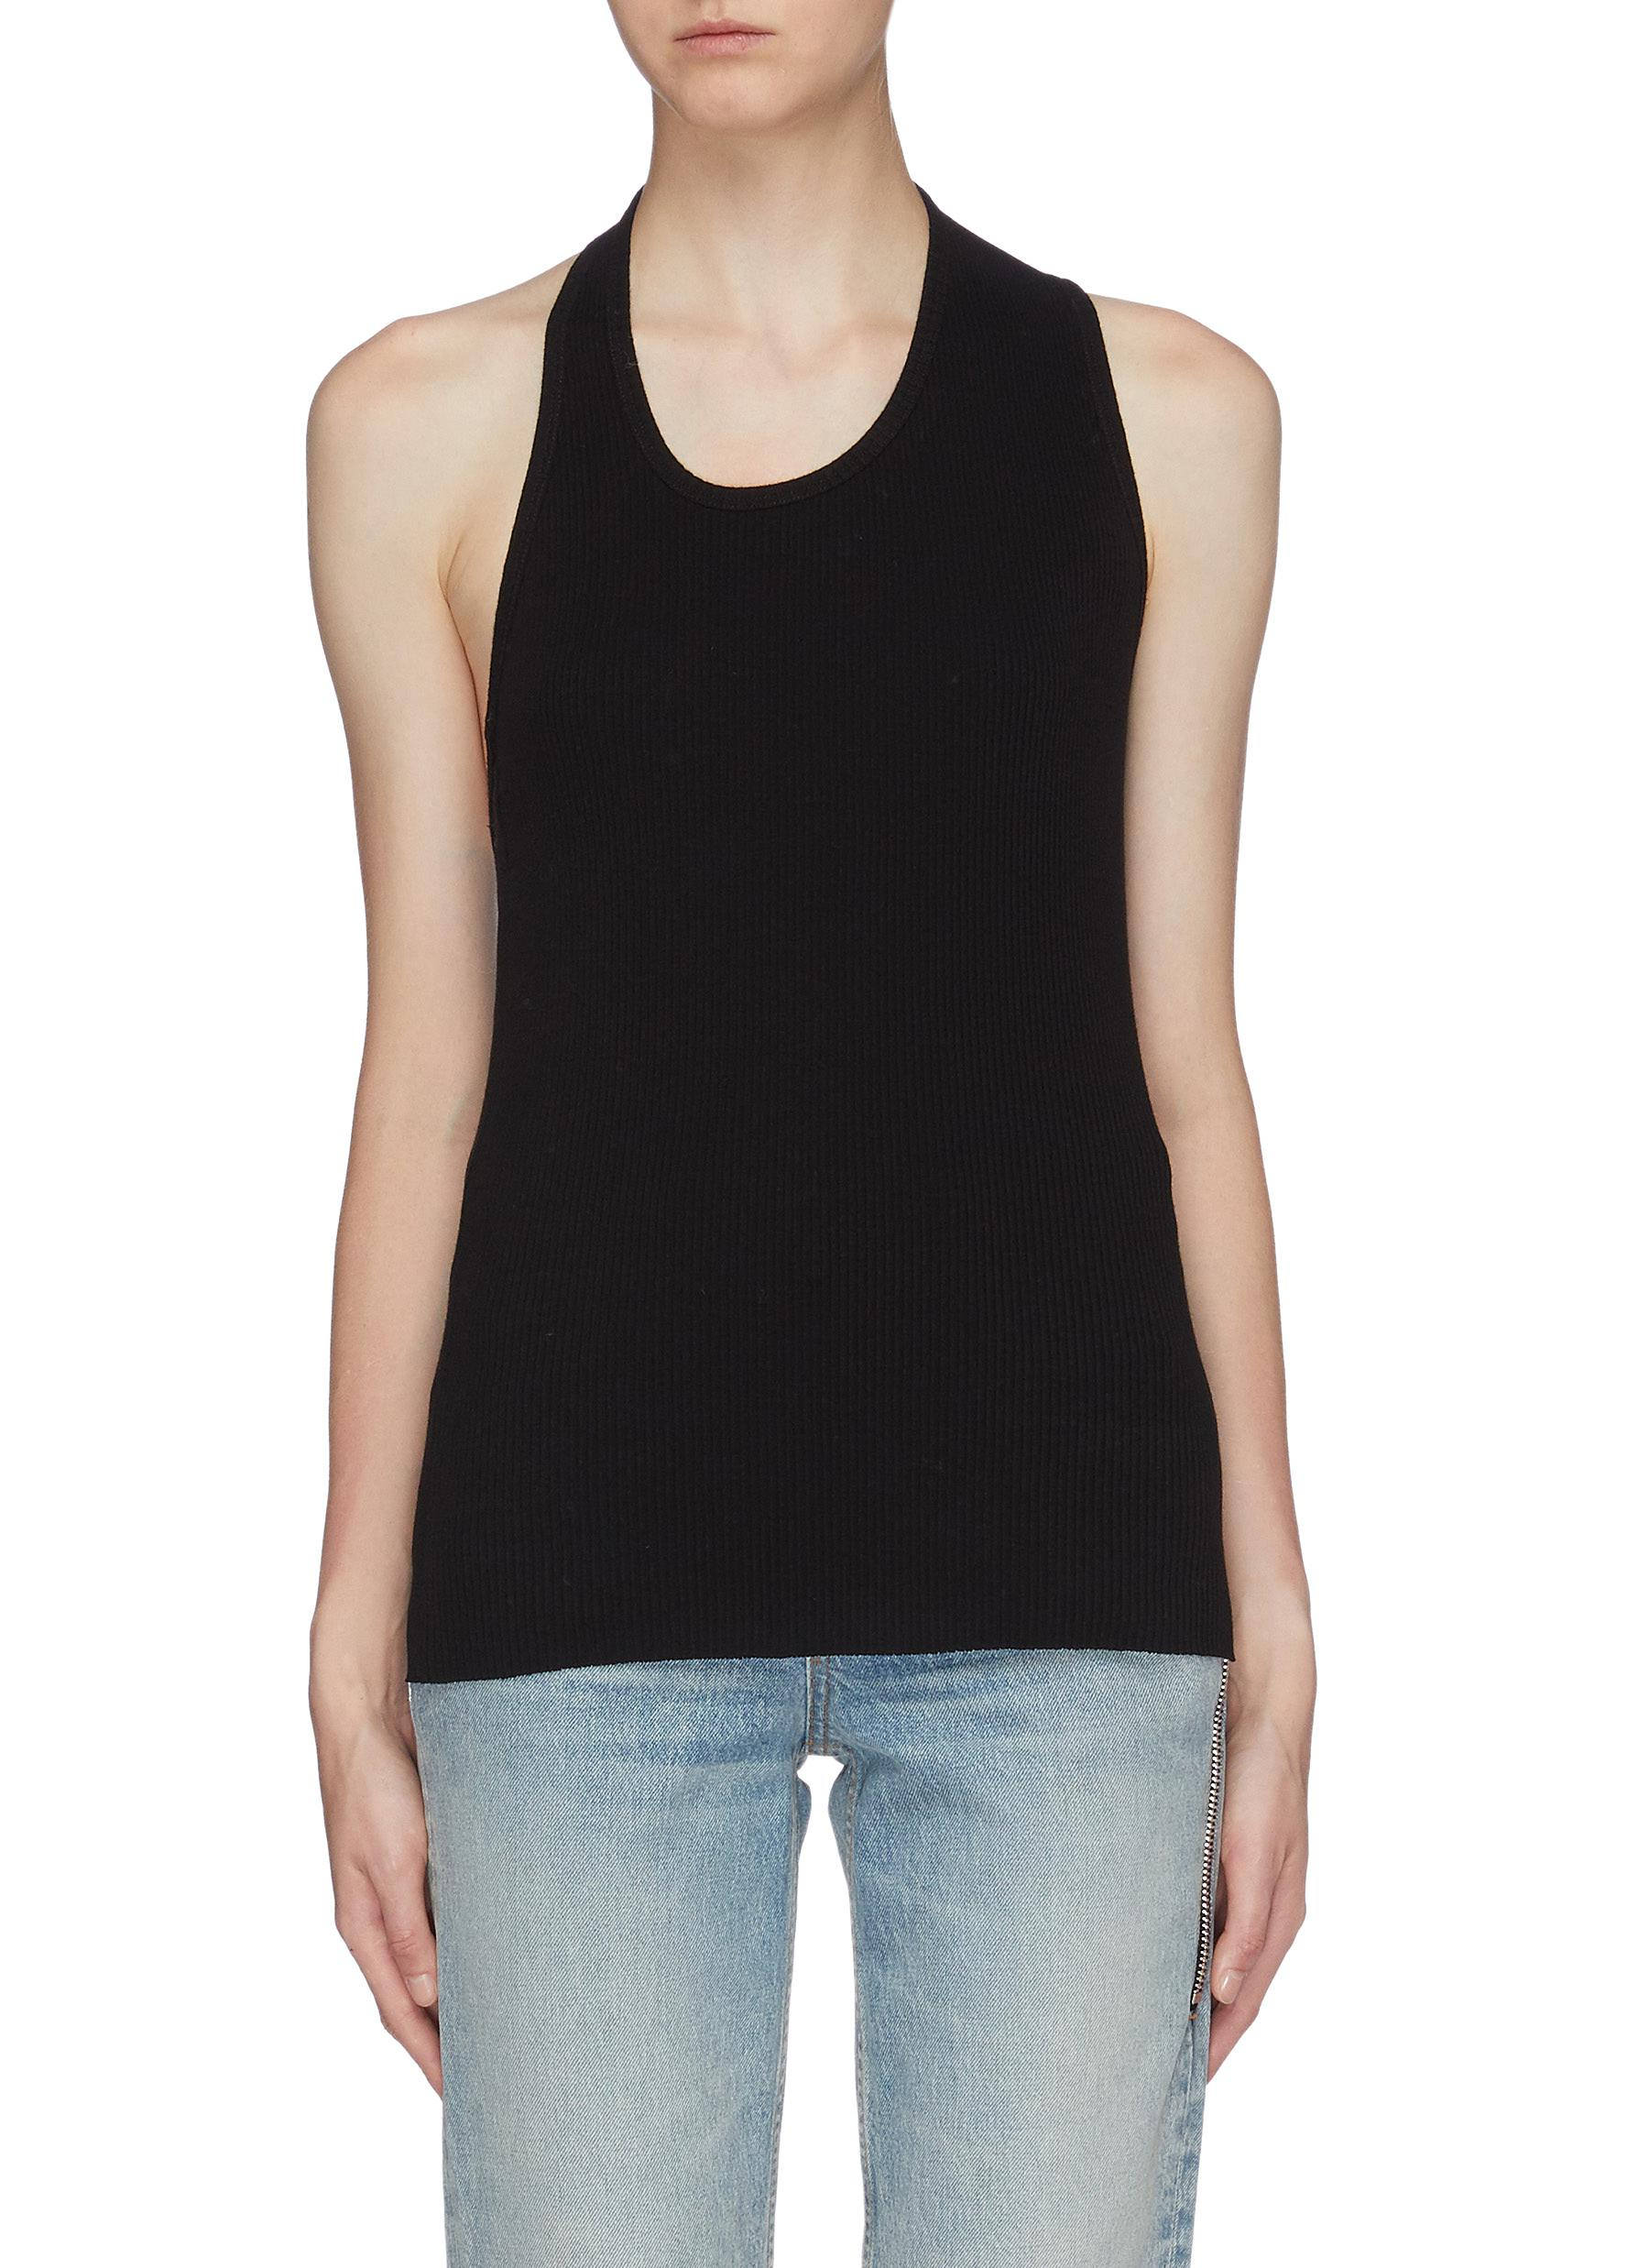 Asymmetric cutout back rib knit tank top by Helmut Lang